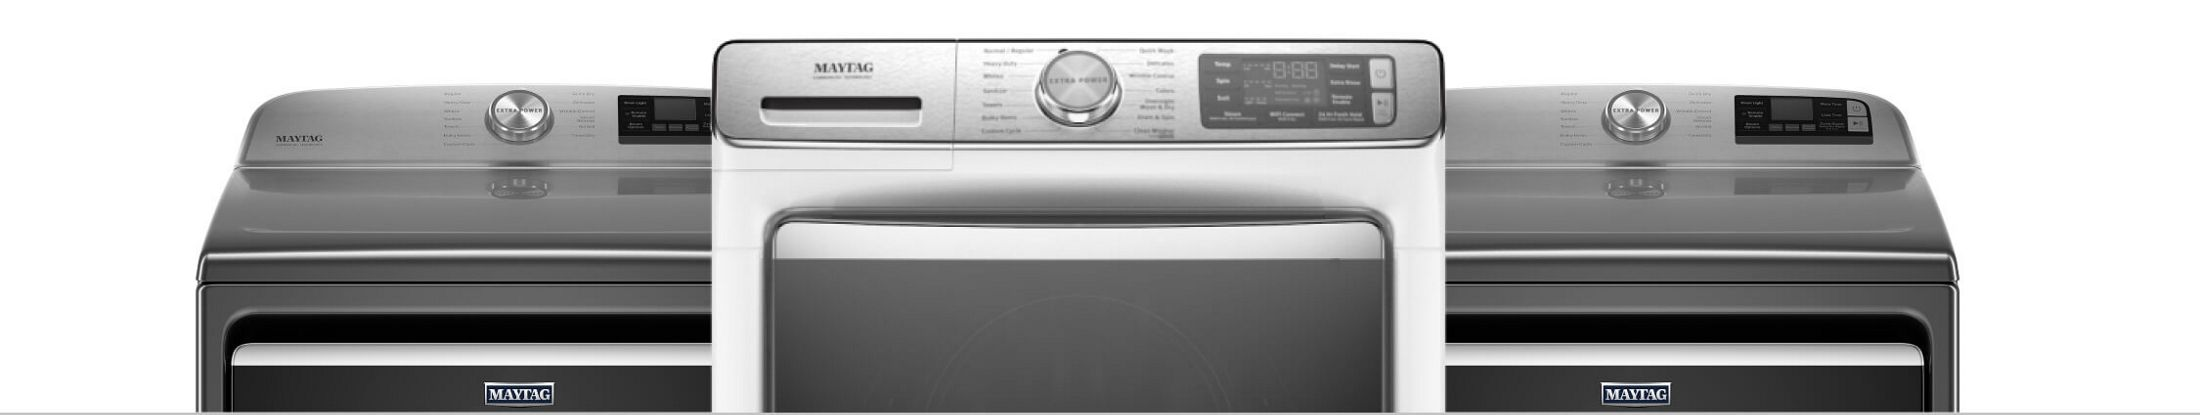 The top of three dryers